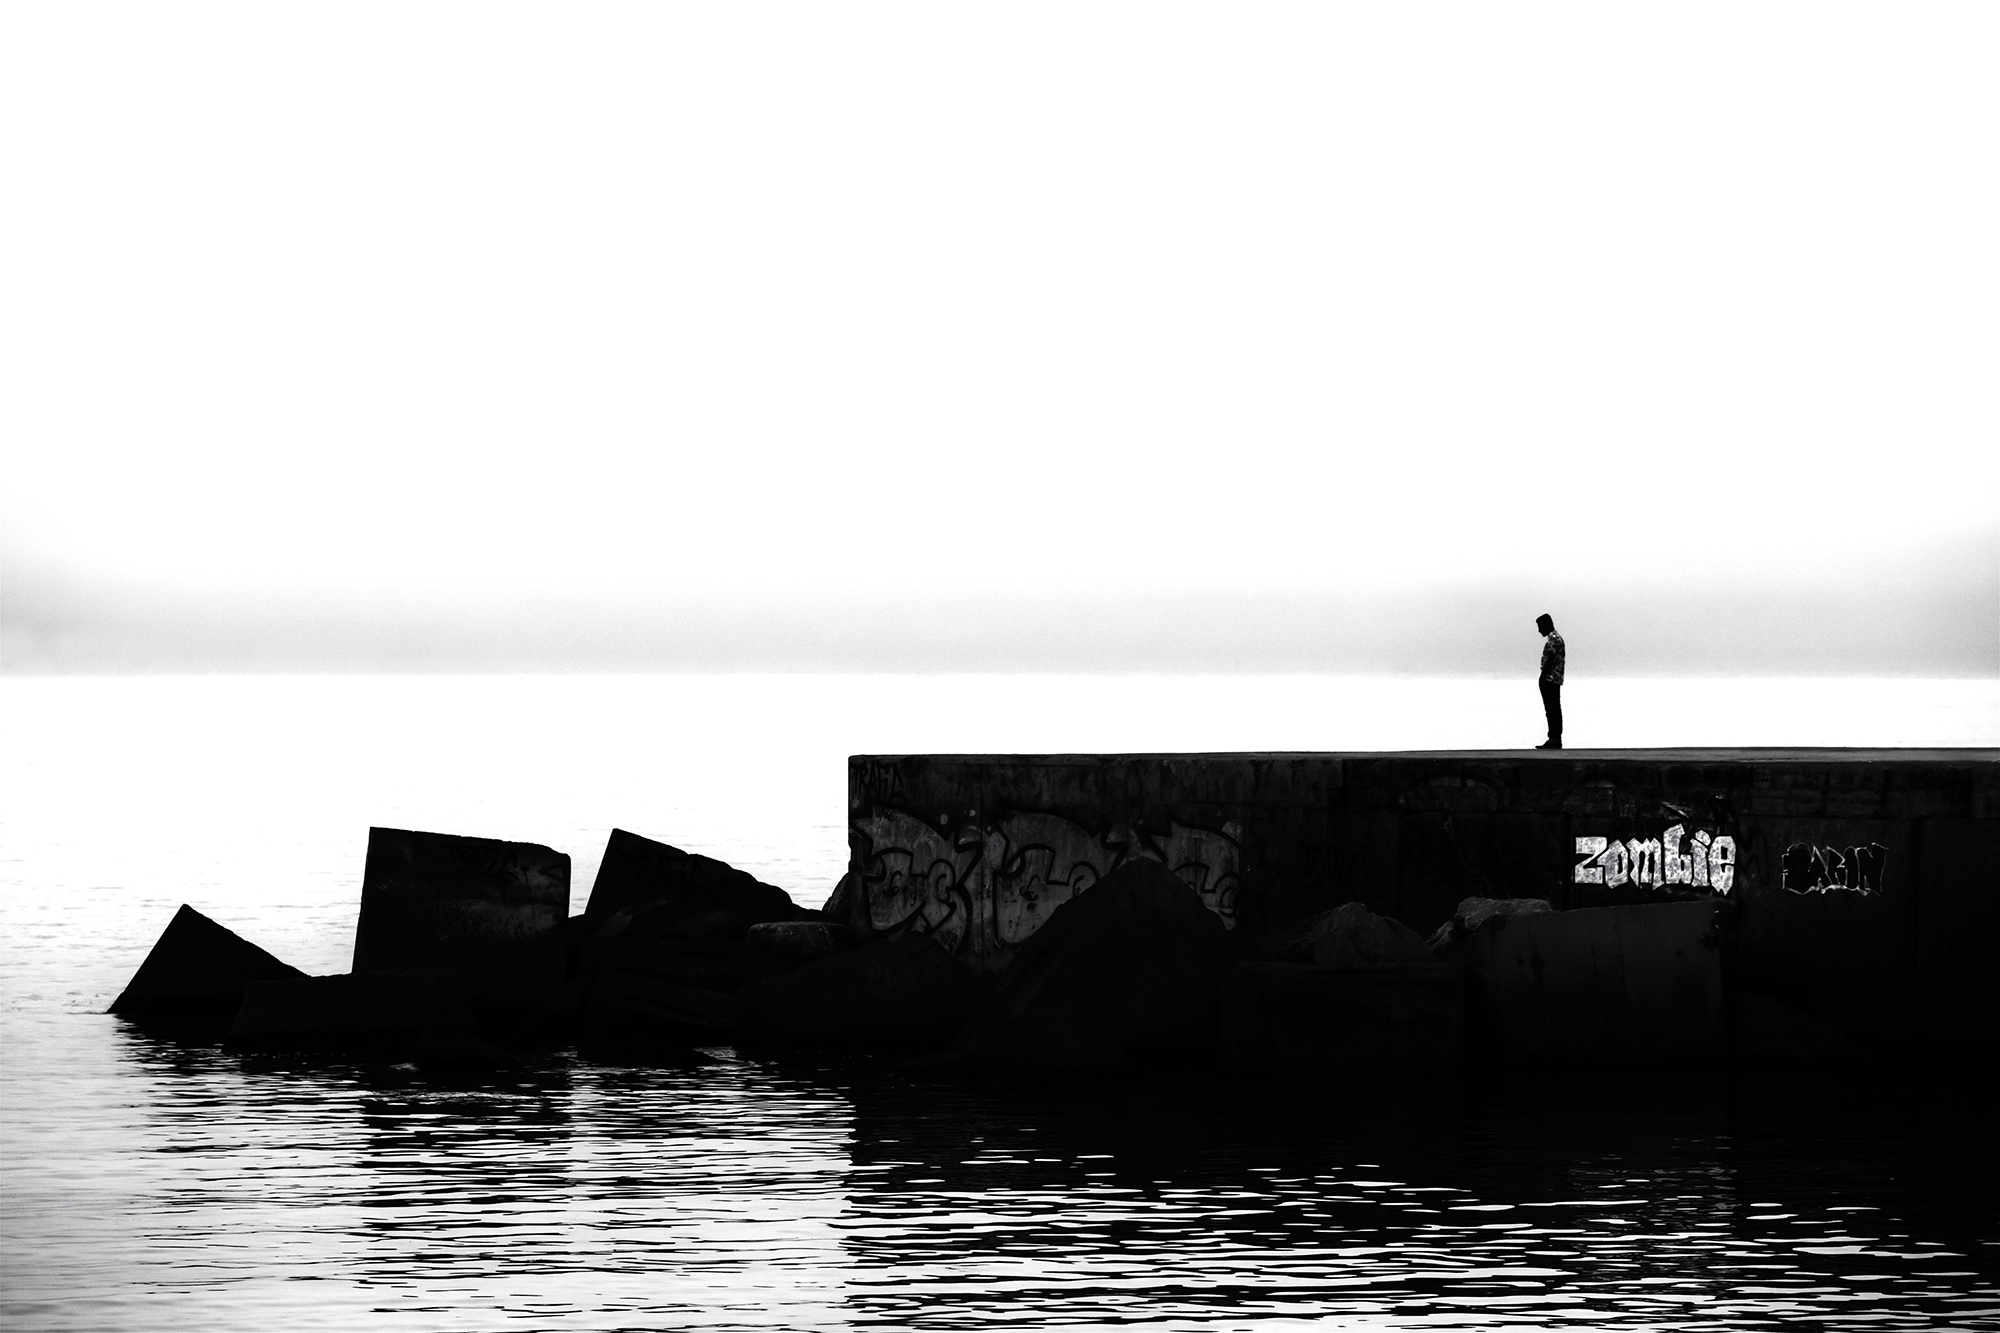 Contemplating the River Styx. Barcelona, 2014